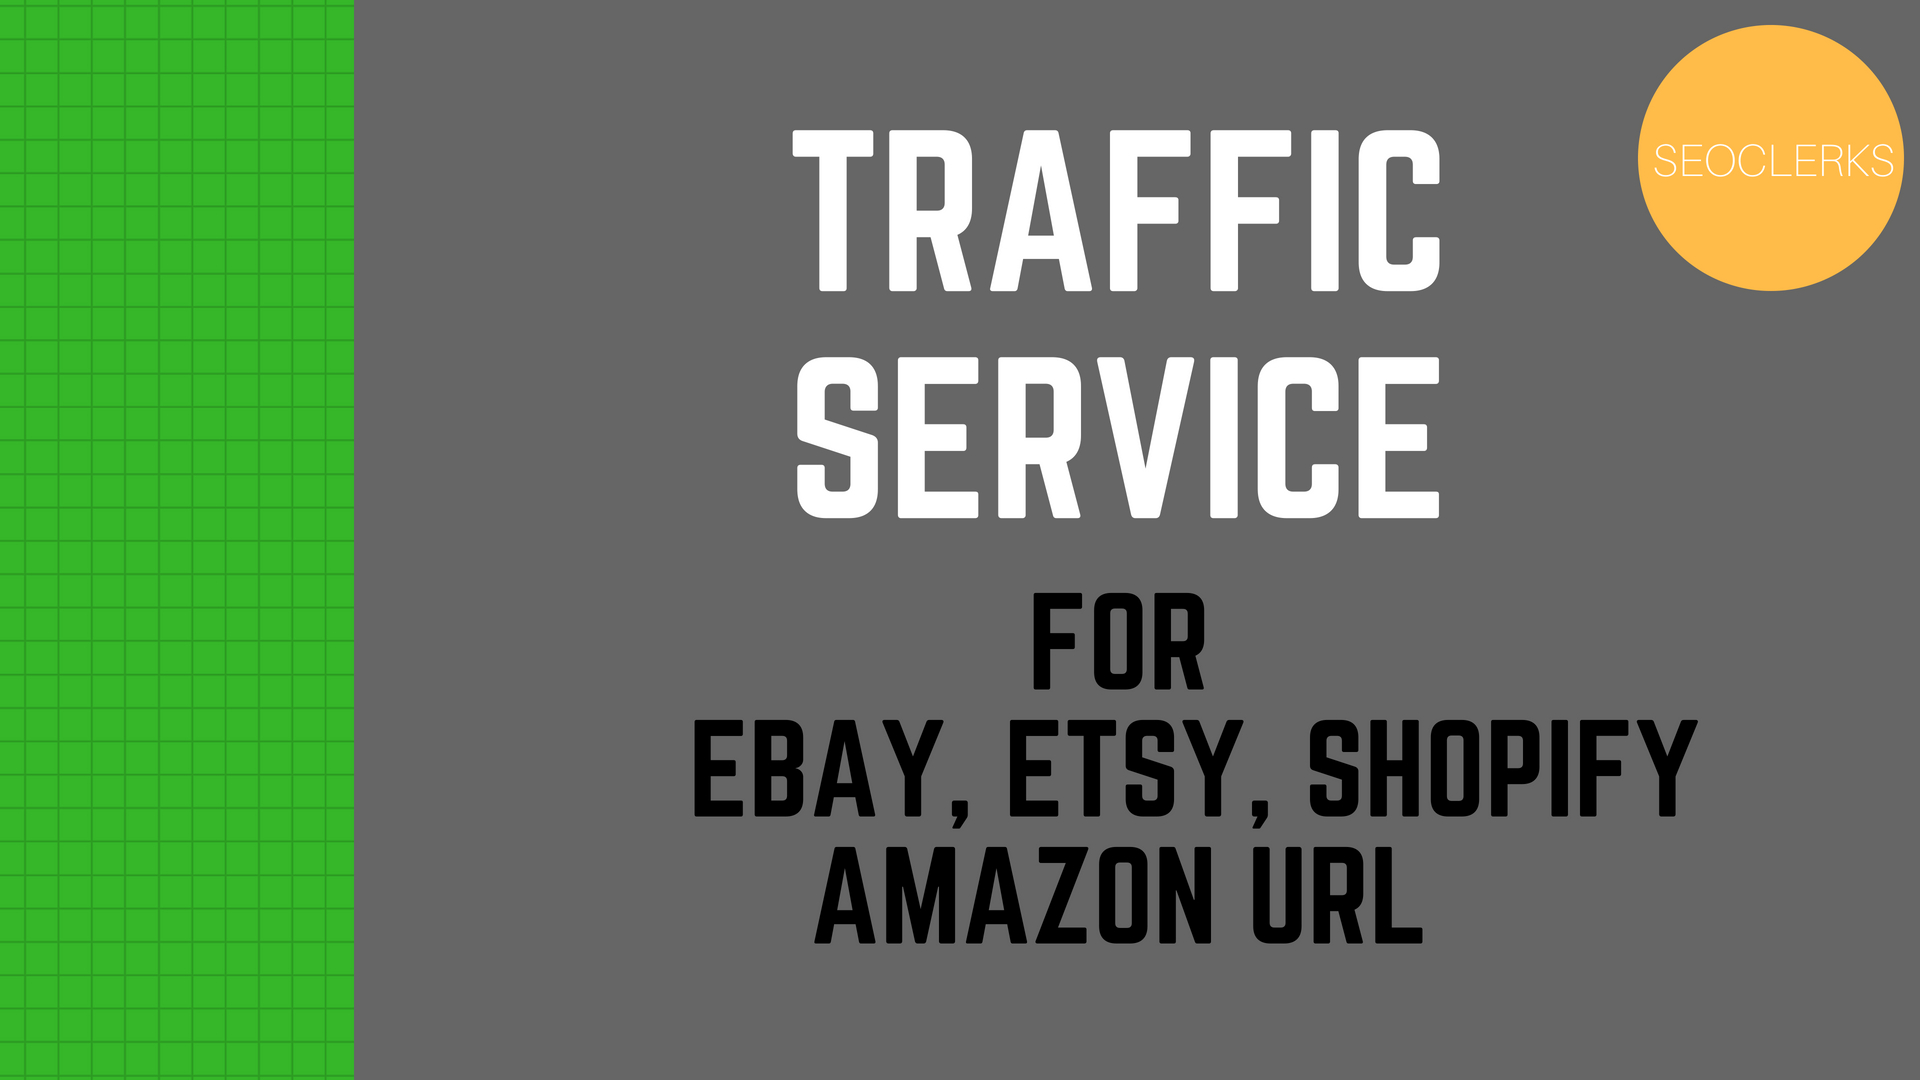 Promote Your Ebay,  Etsy,  Shopify And Amazon Url To Targeted Traffic